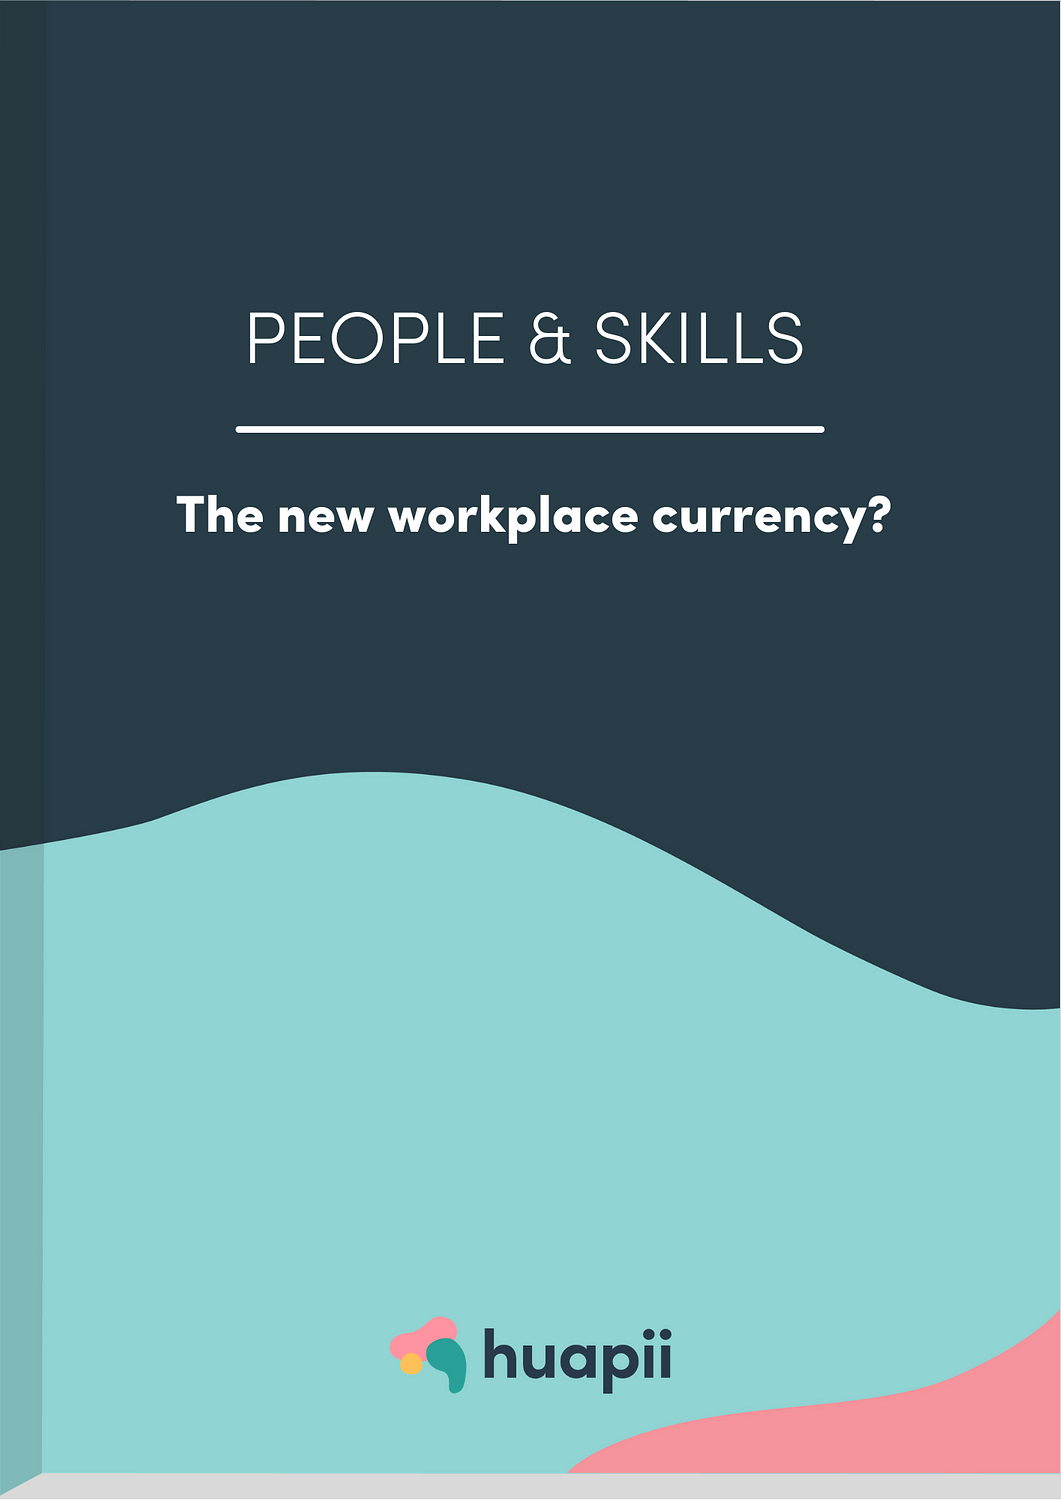 ebook people & skills huapii